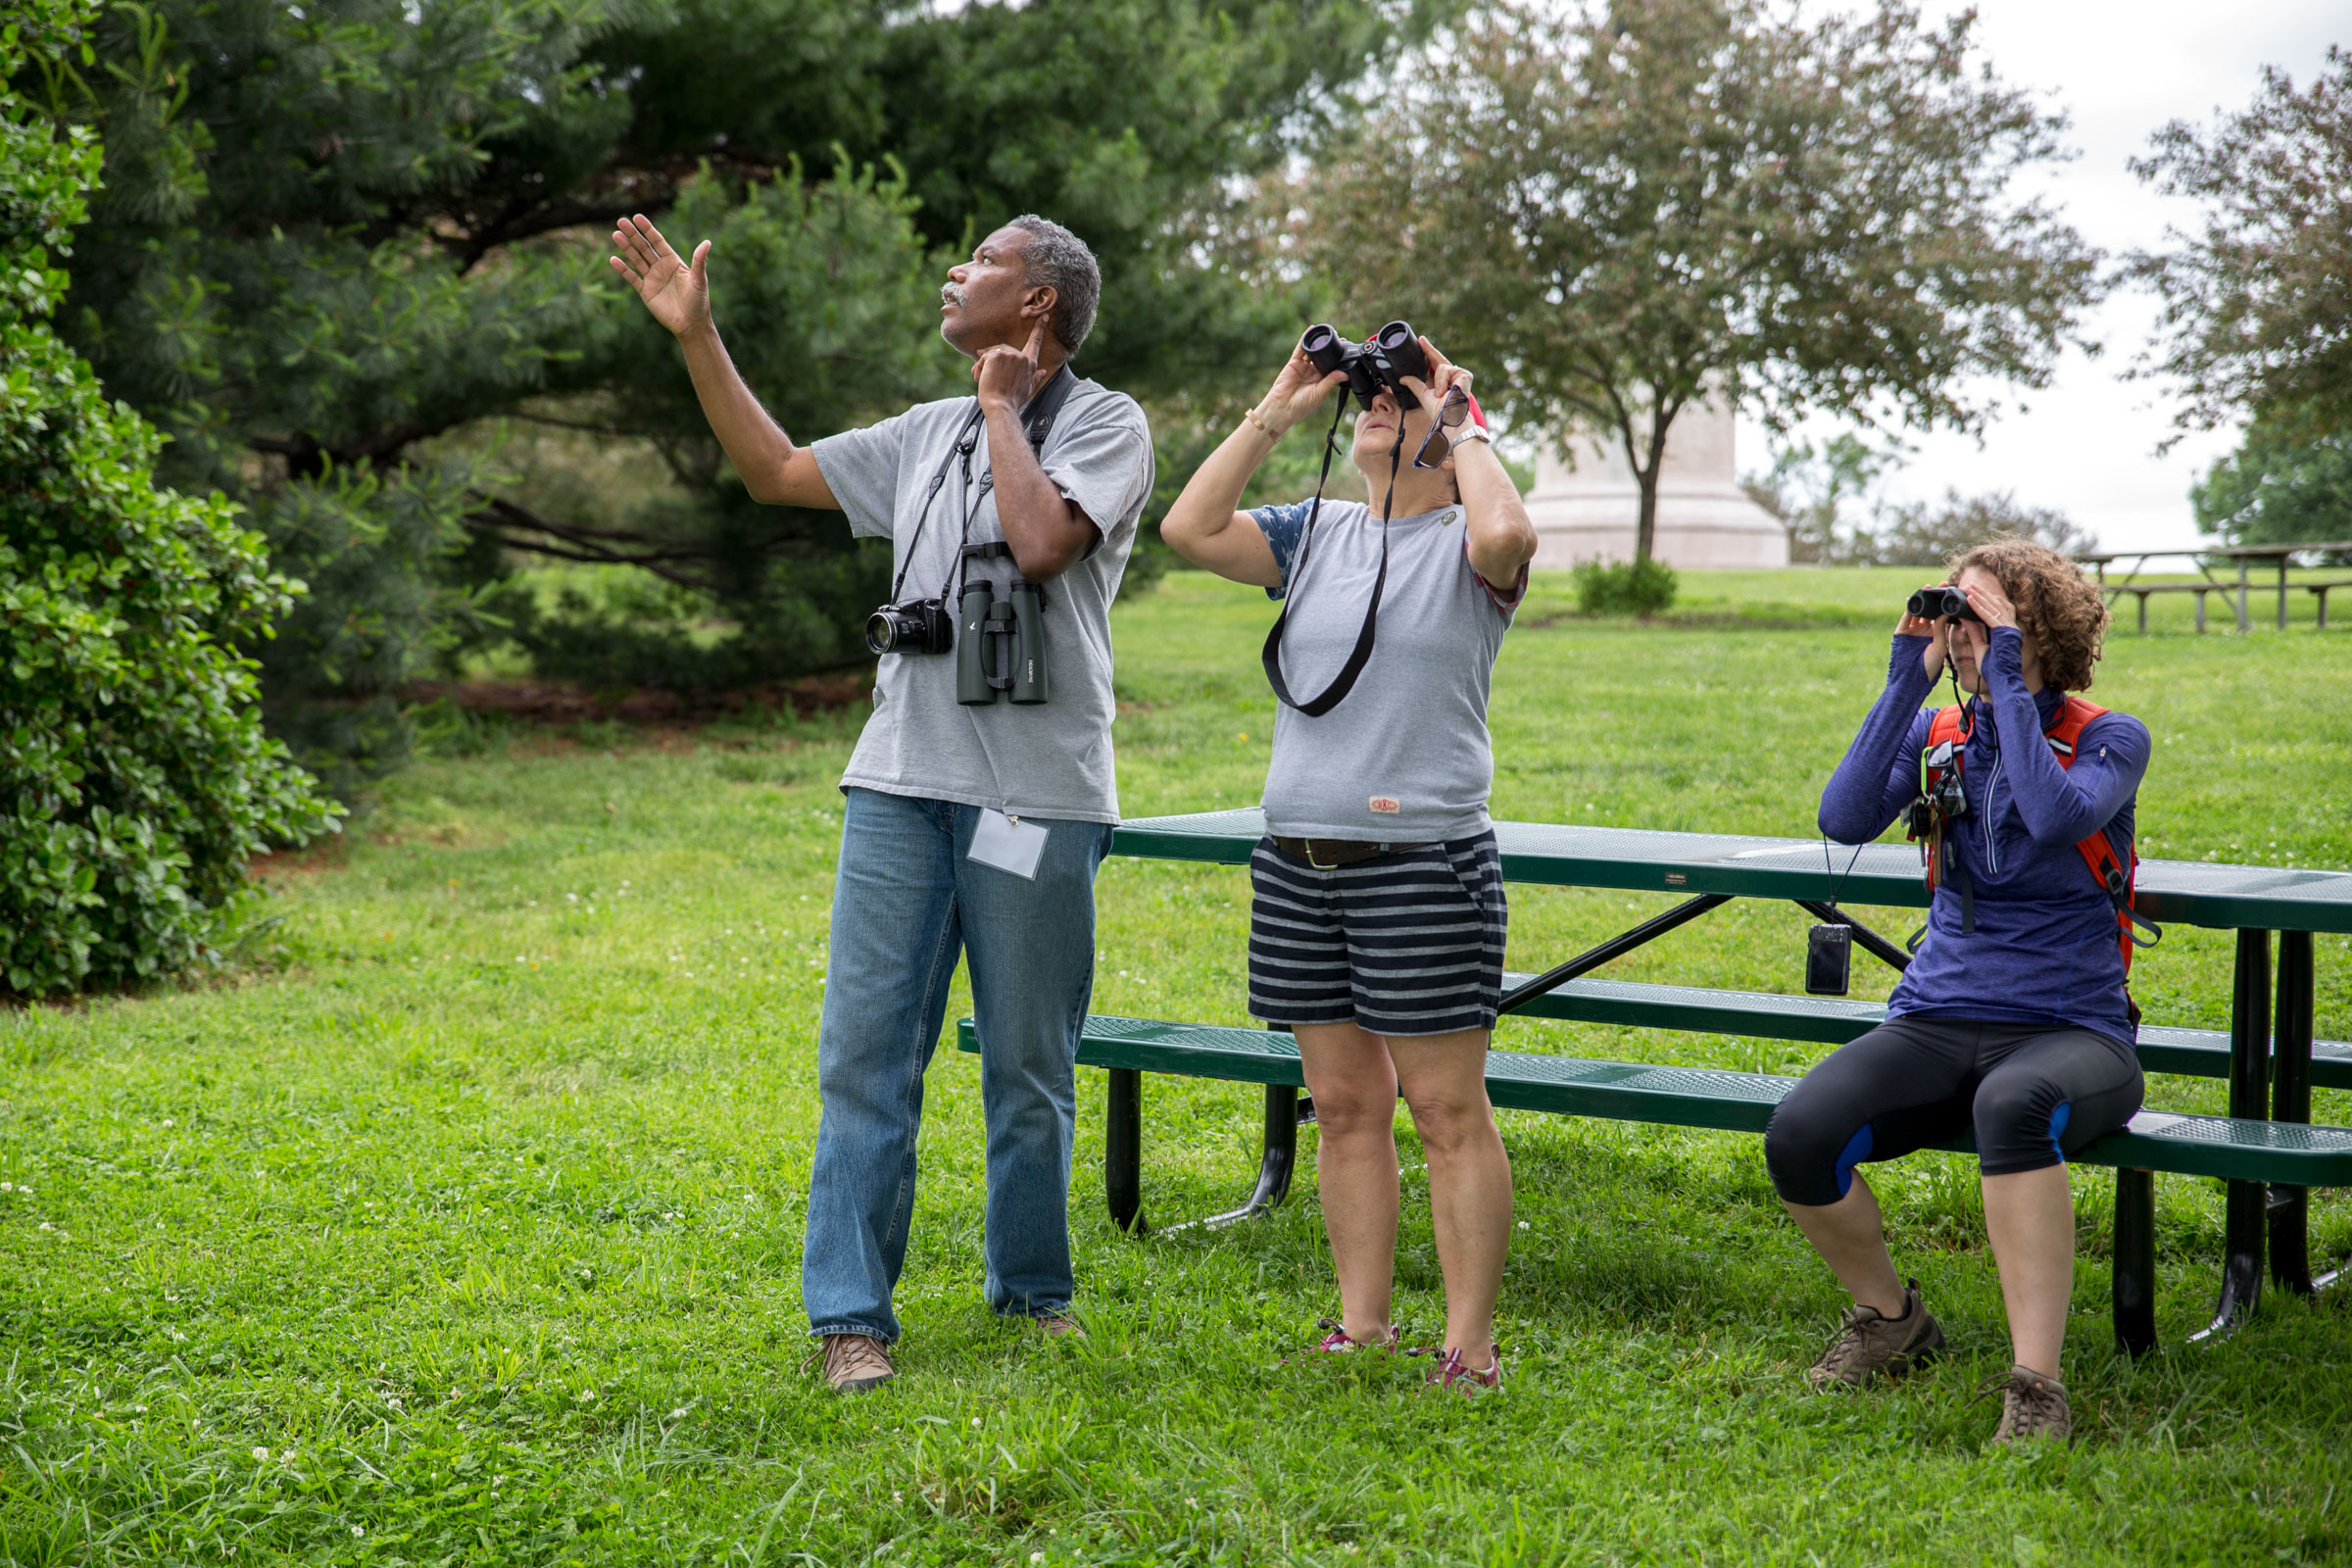 A Blackburnian Warbler steals the spotlight during our tour of Fort McHenry. Even Costley, a regular visitor and veteran birder, was impressed. Camilla Cerea/Audubon